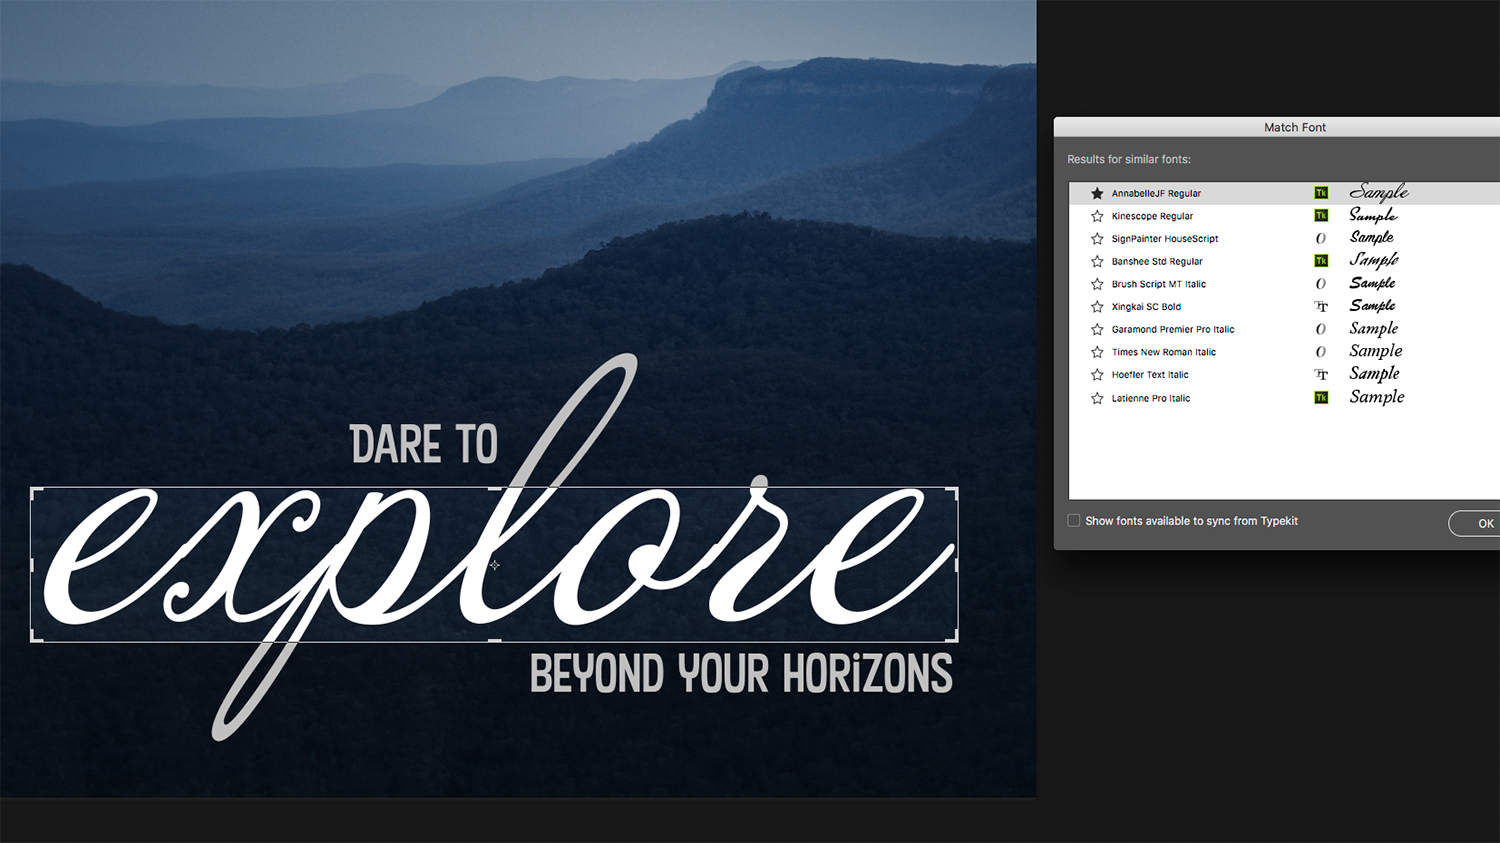 Photoshop tutorial: How to use Photoshop's new Match Font tool to ...